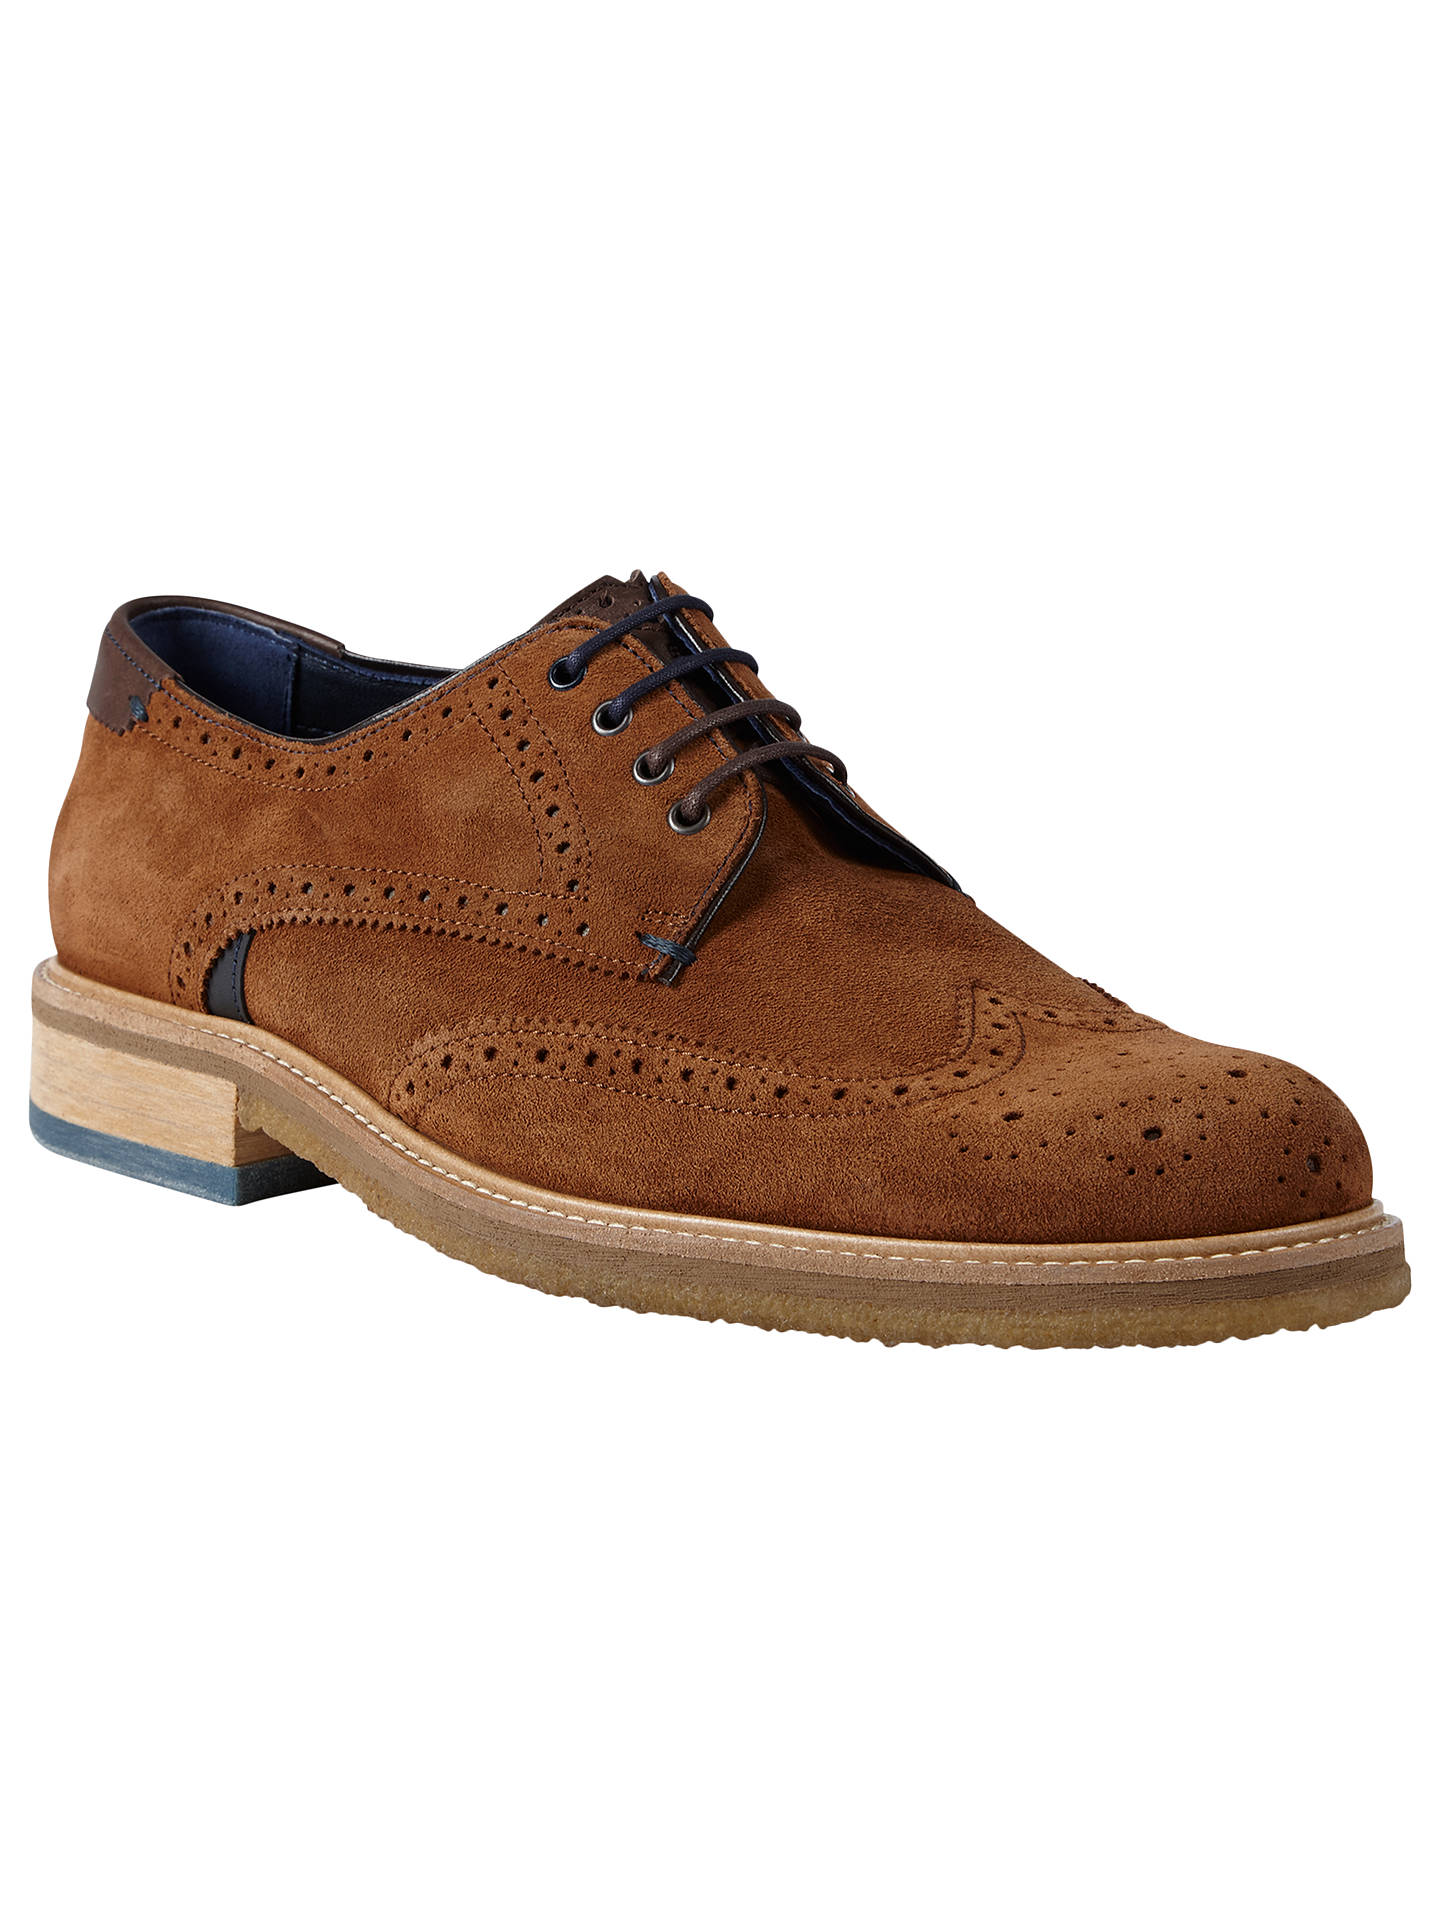 buying new half price best authentic Ted Baker Prycce Wing Derby Shoes, Light Tan at John Lewis & Partners